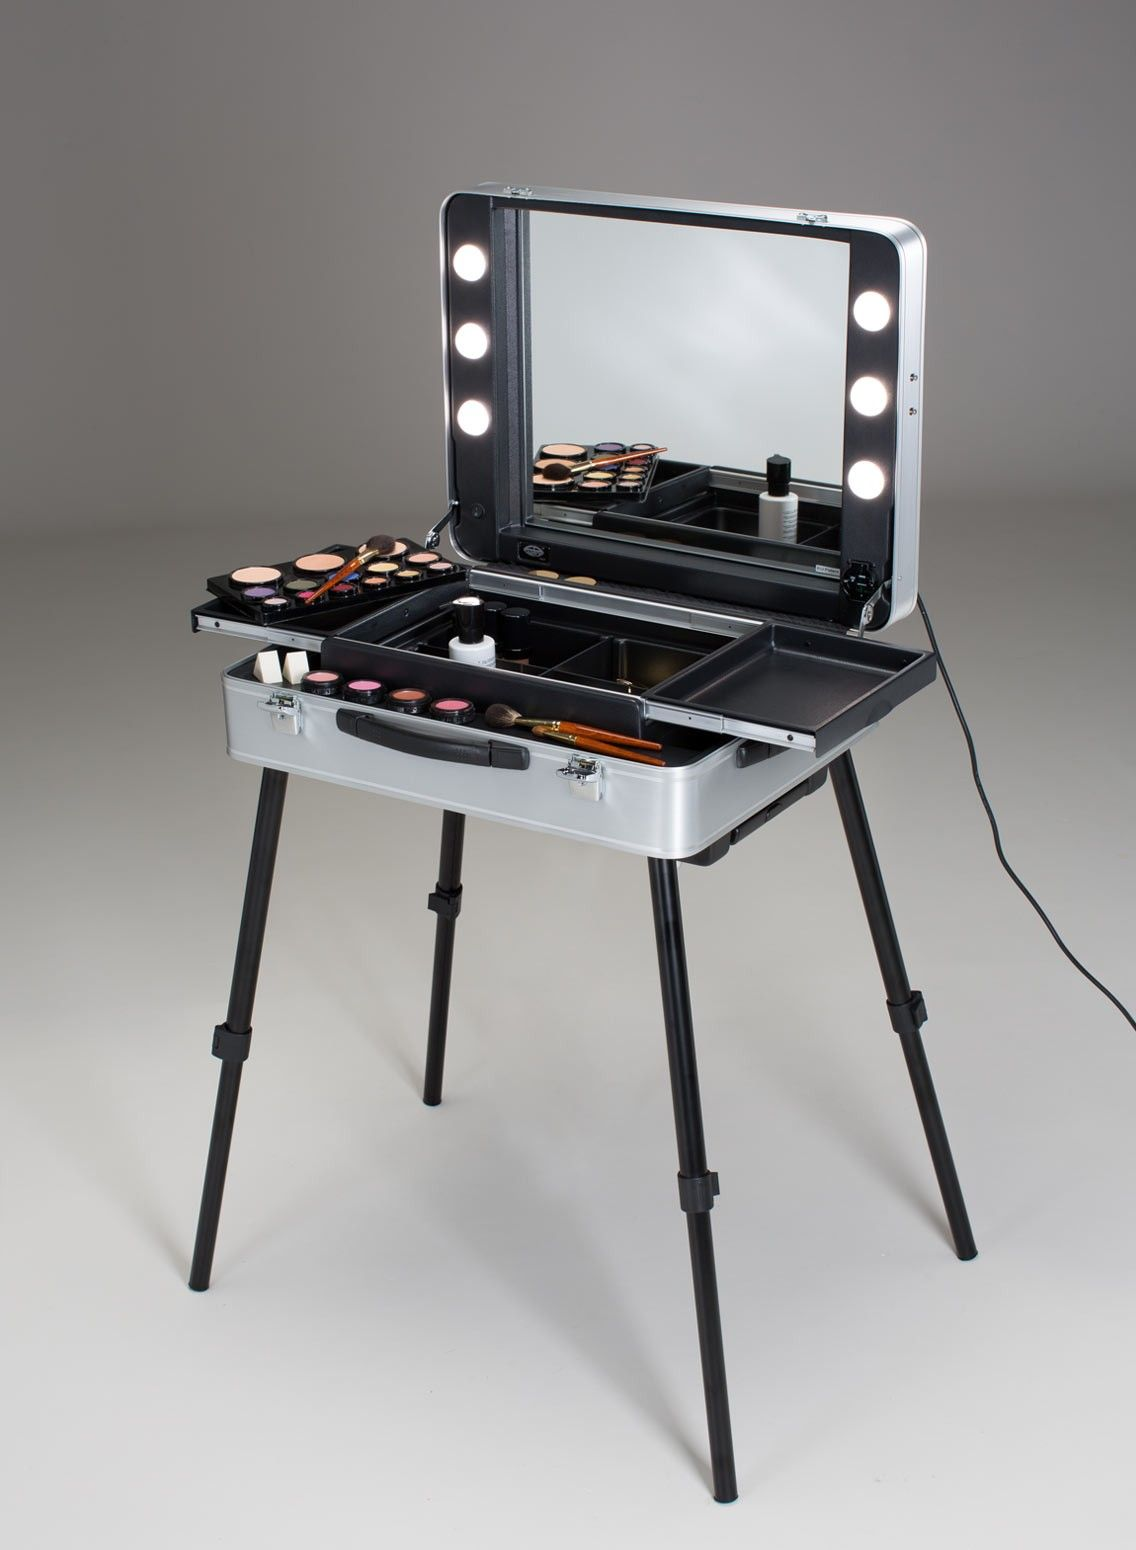 NEW EVOLUTION portable make up studio. Portable Makeup & Hairstyling Stations. Cantoni for beauty professionals and passionates who love to do makeup and ...